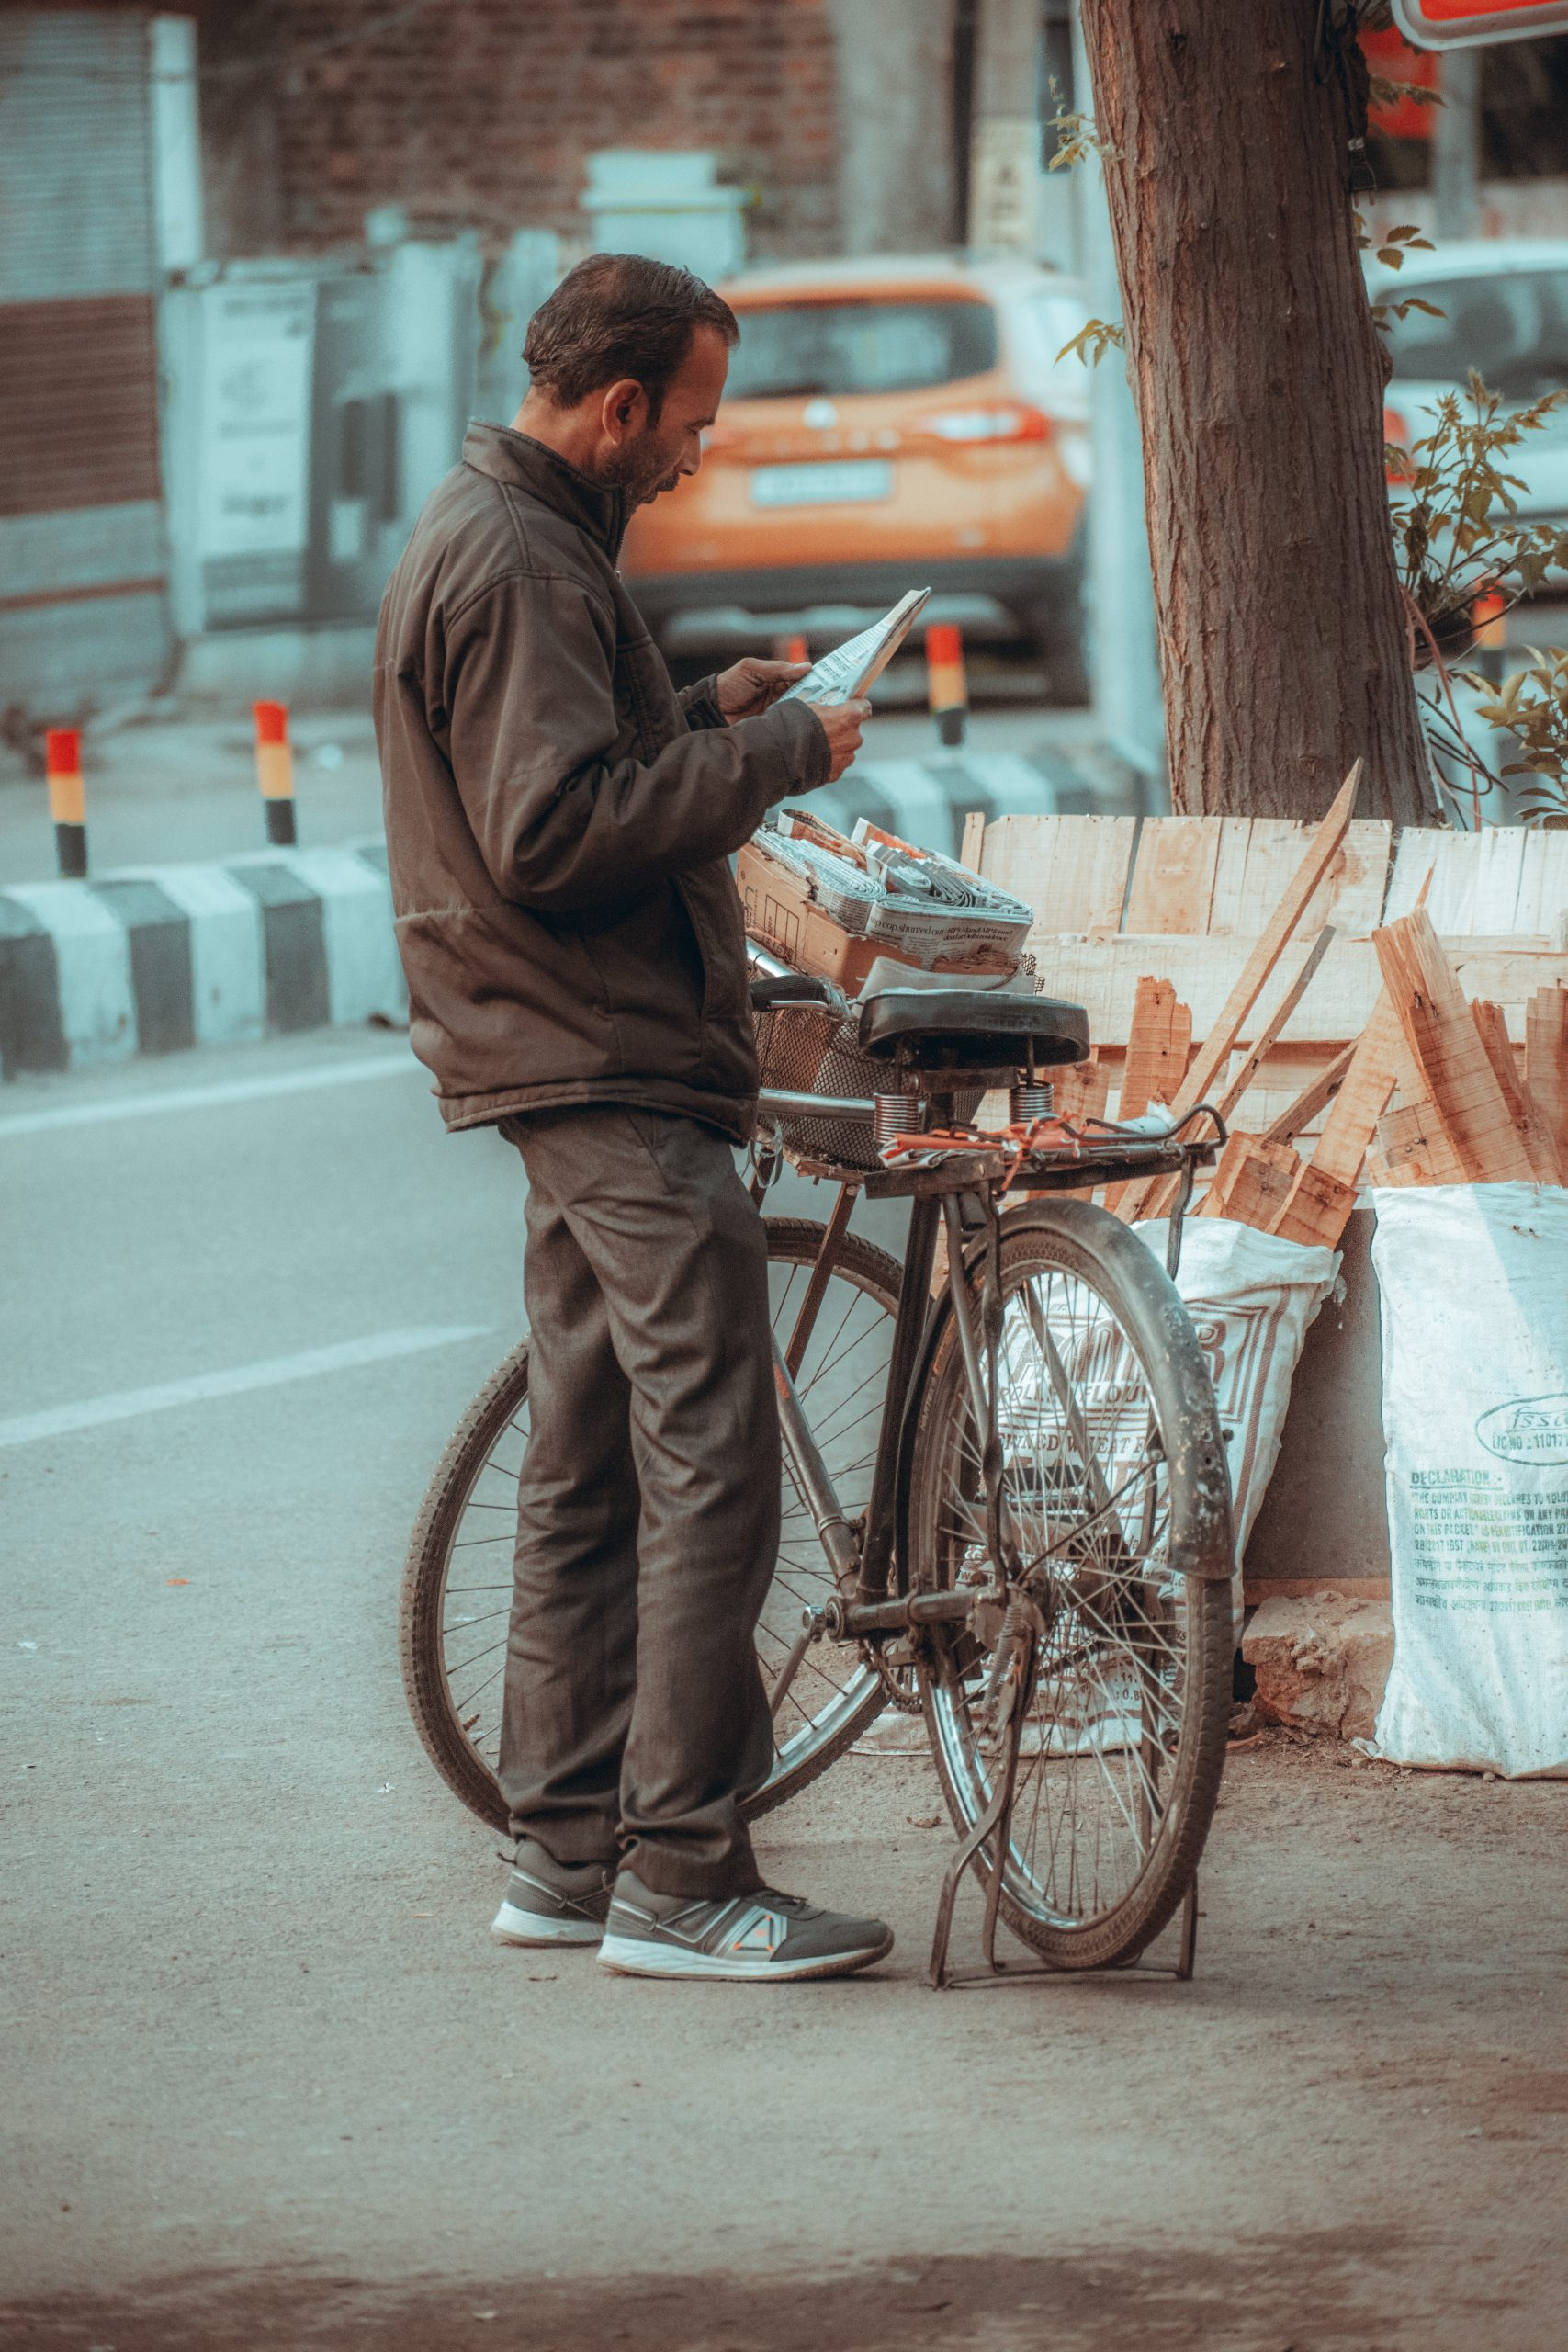 A man with his bicycle